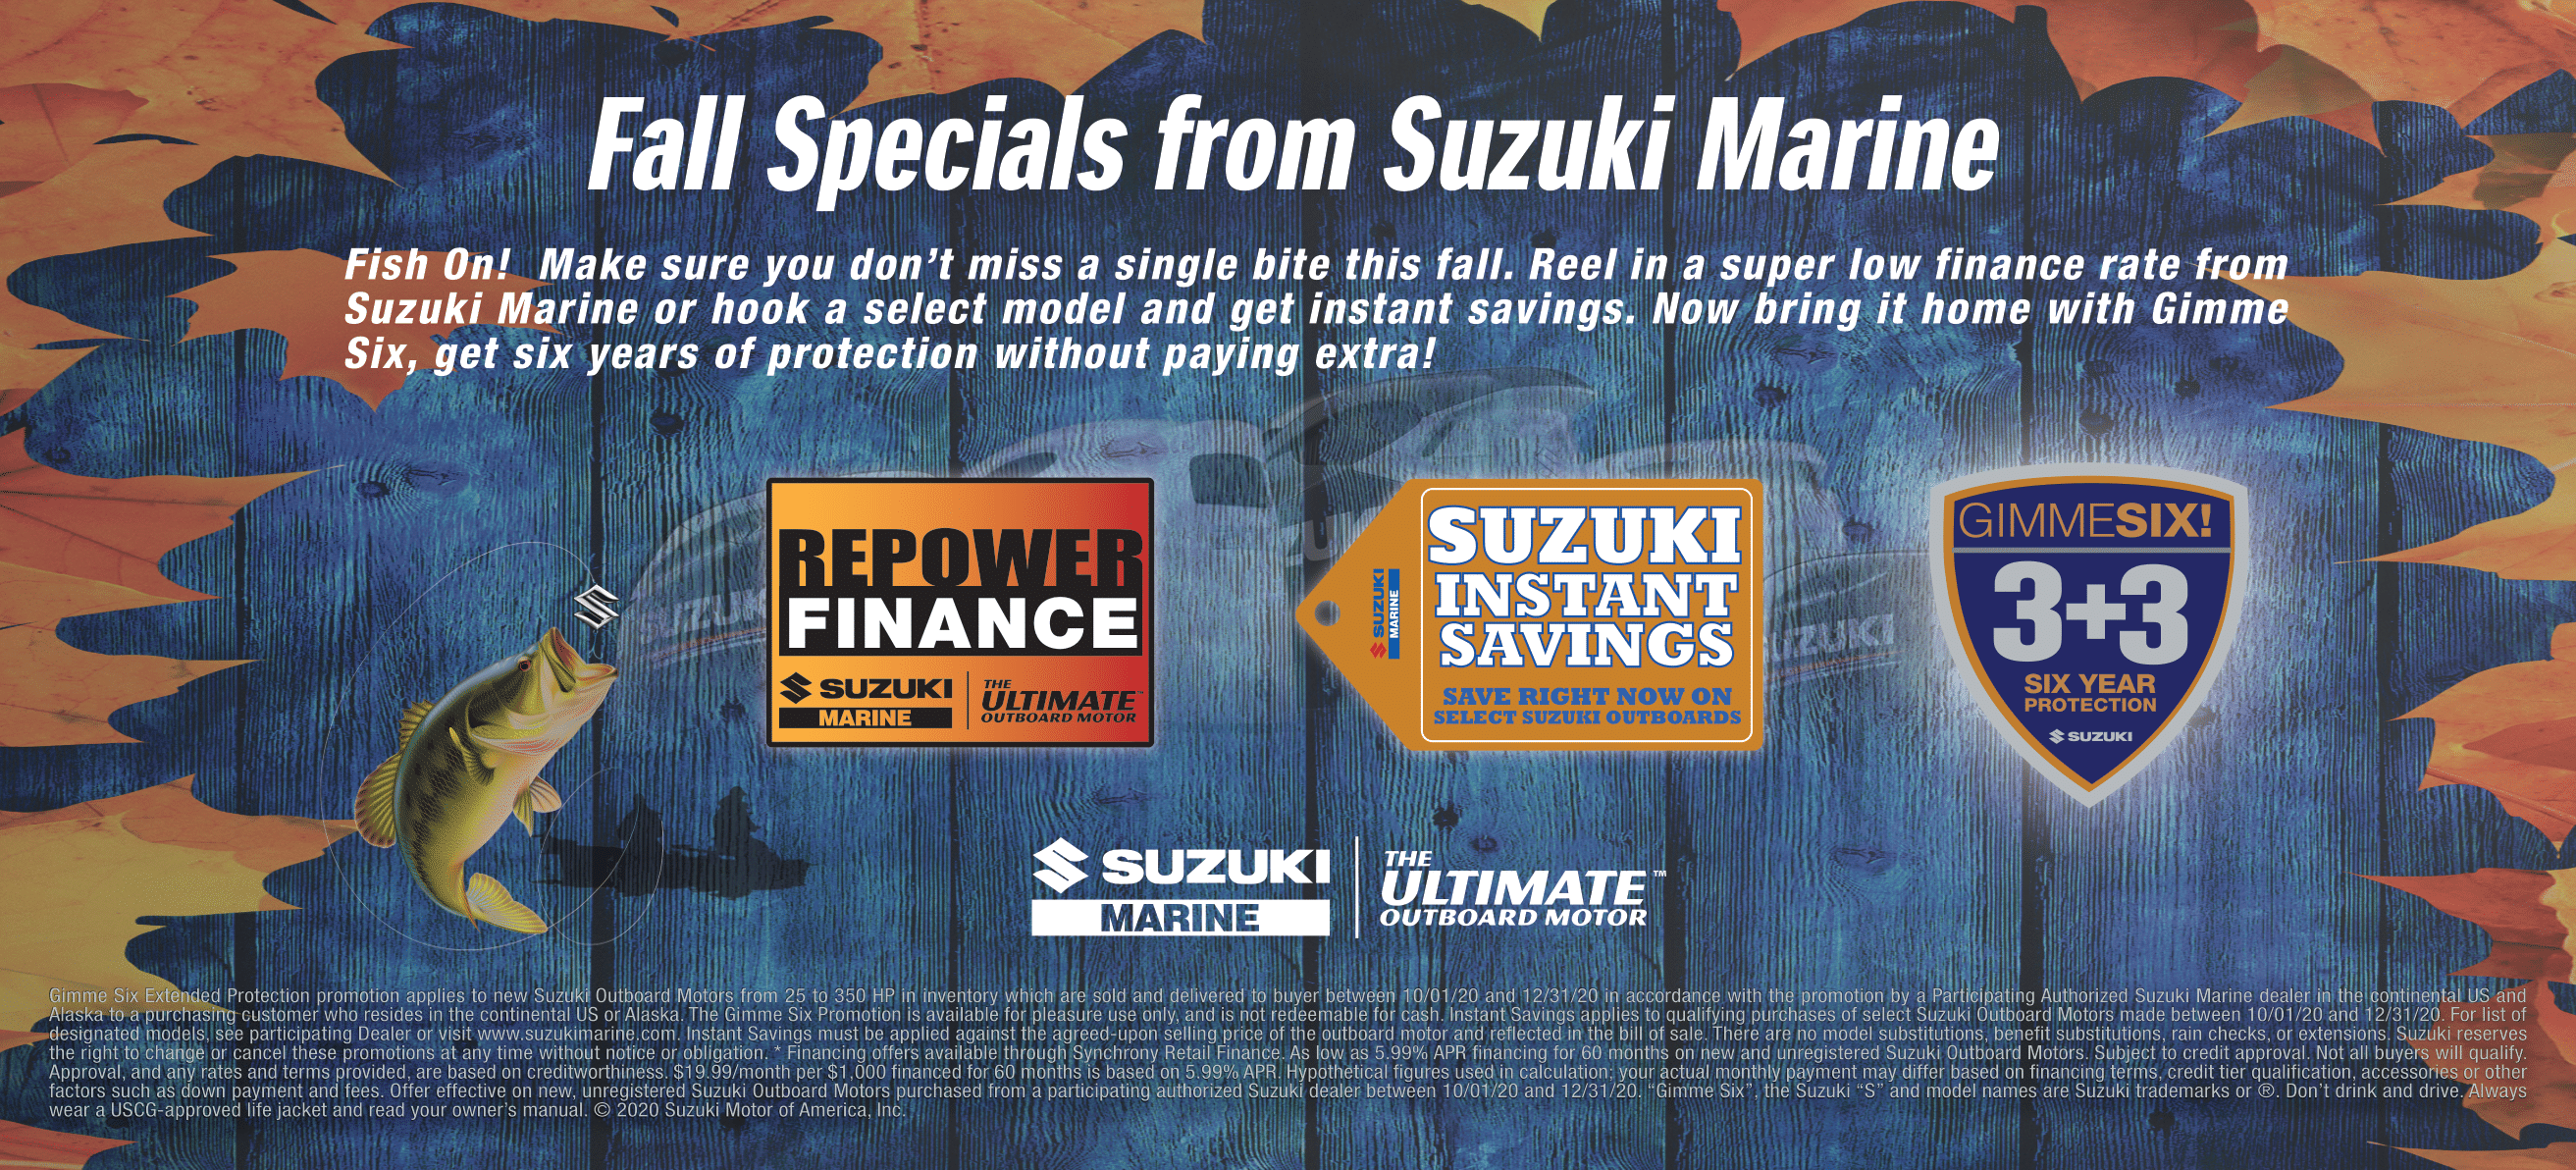 Fall Specials From Suzuki Marine